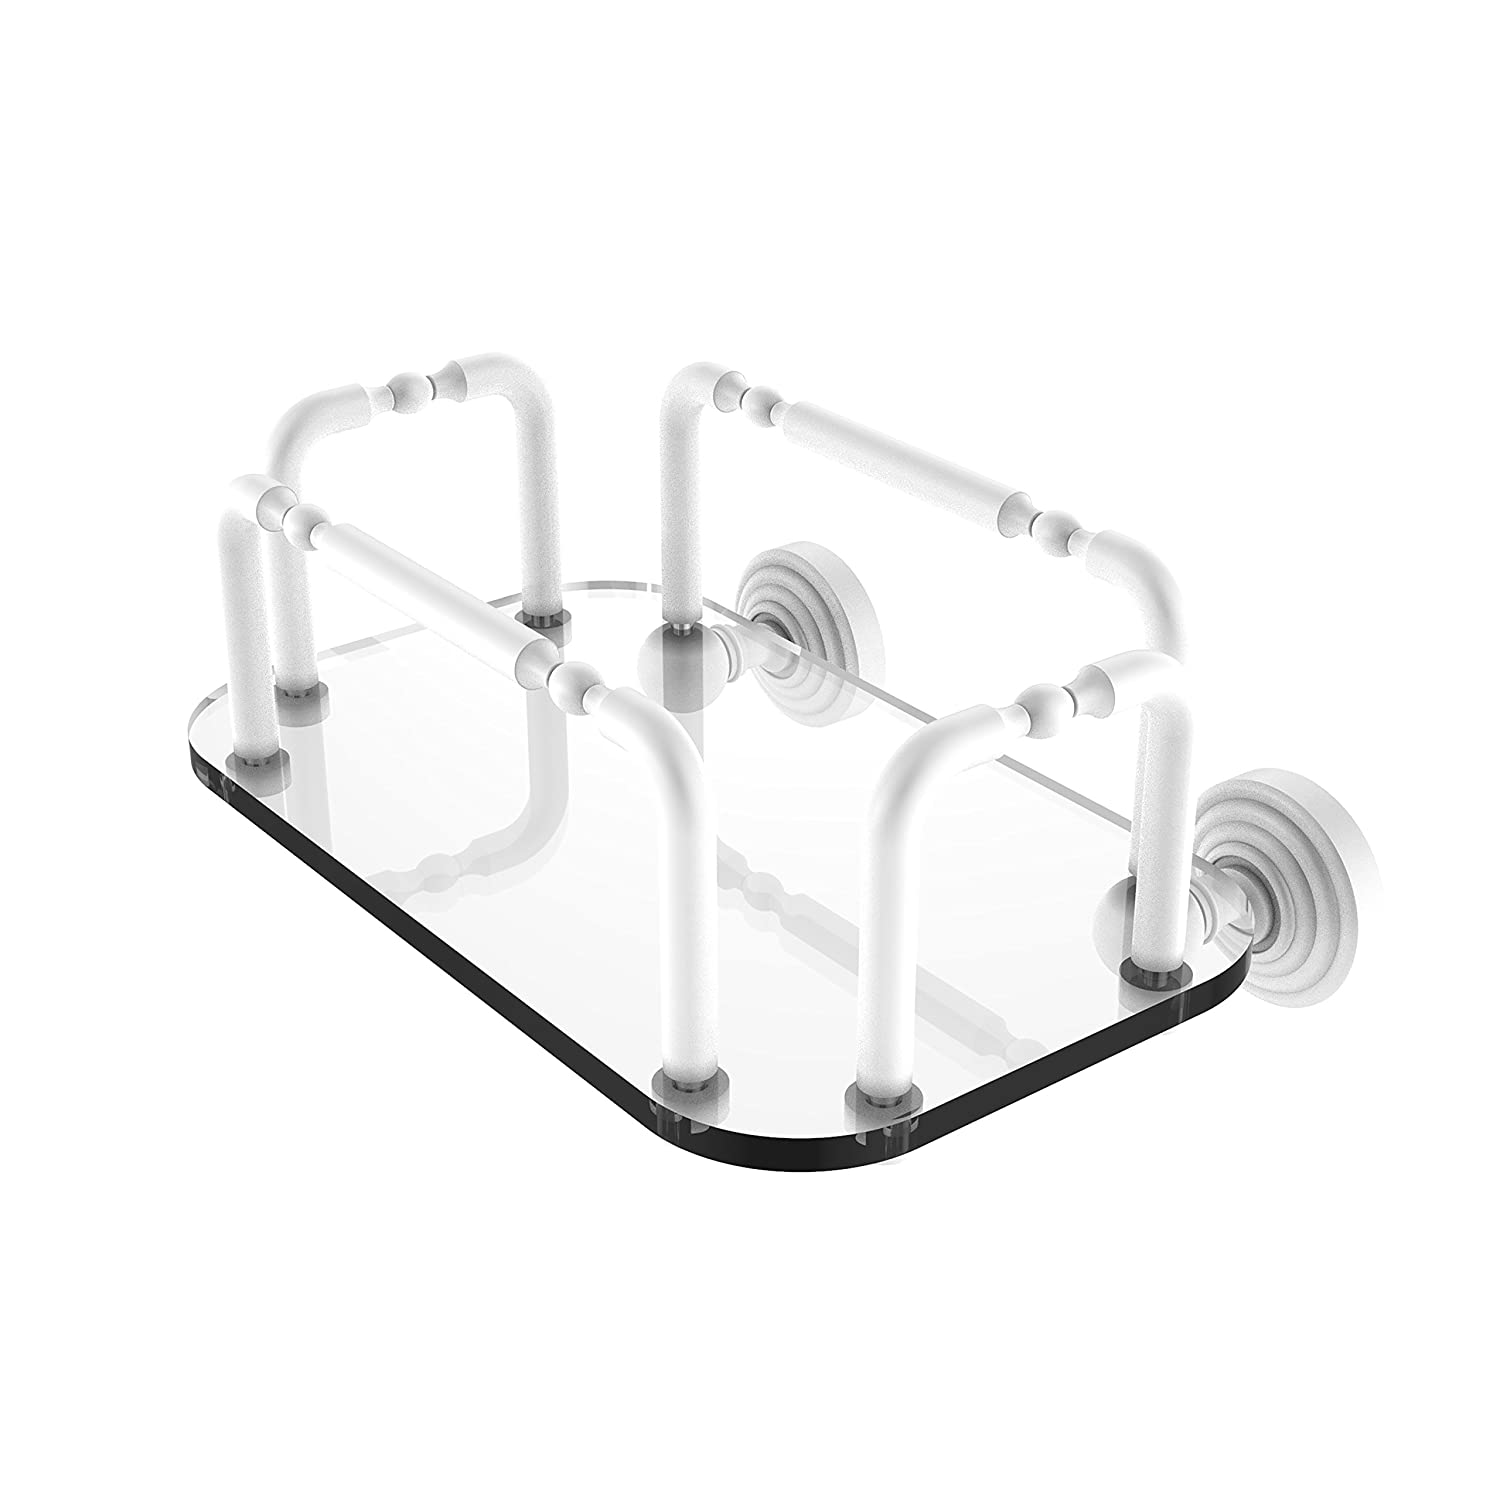 Allied Brass GT-2-WP-WHM Waverly Place Wall Mounted Guest Towel Holder Matte White